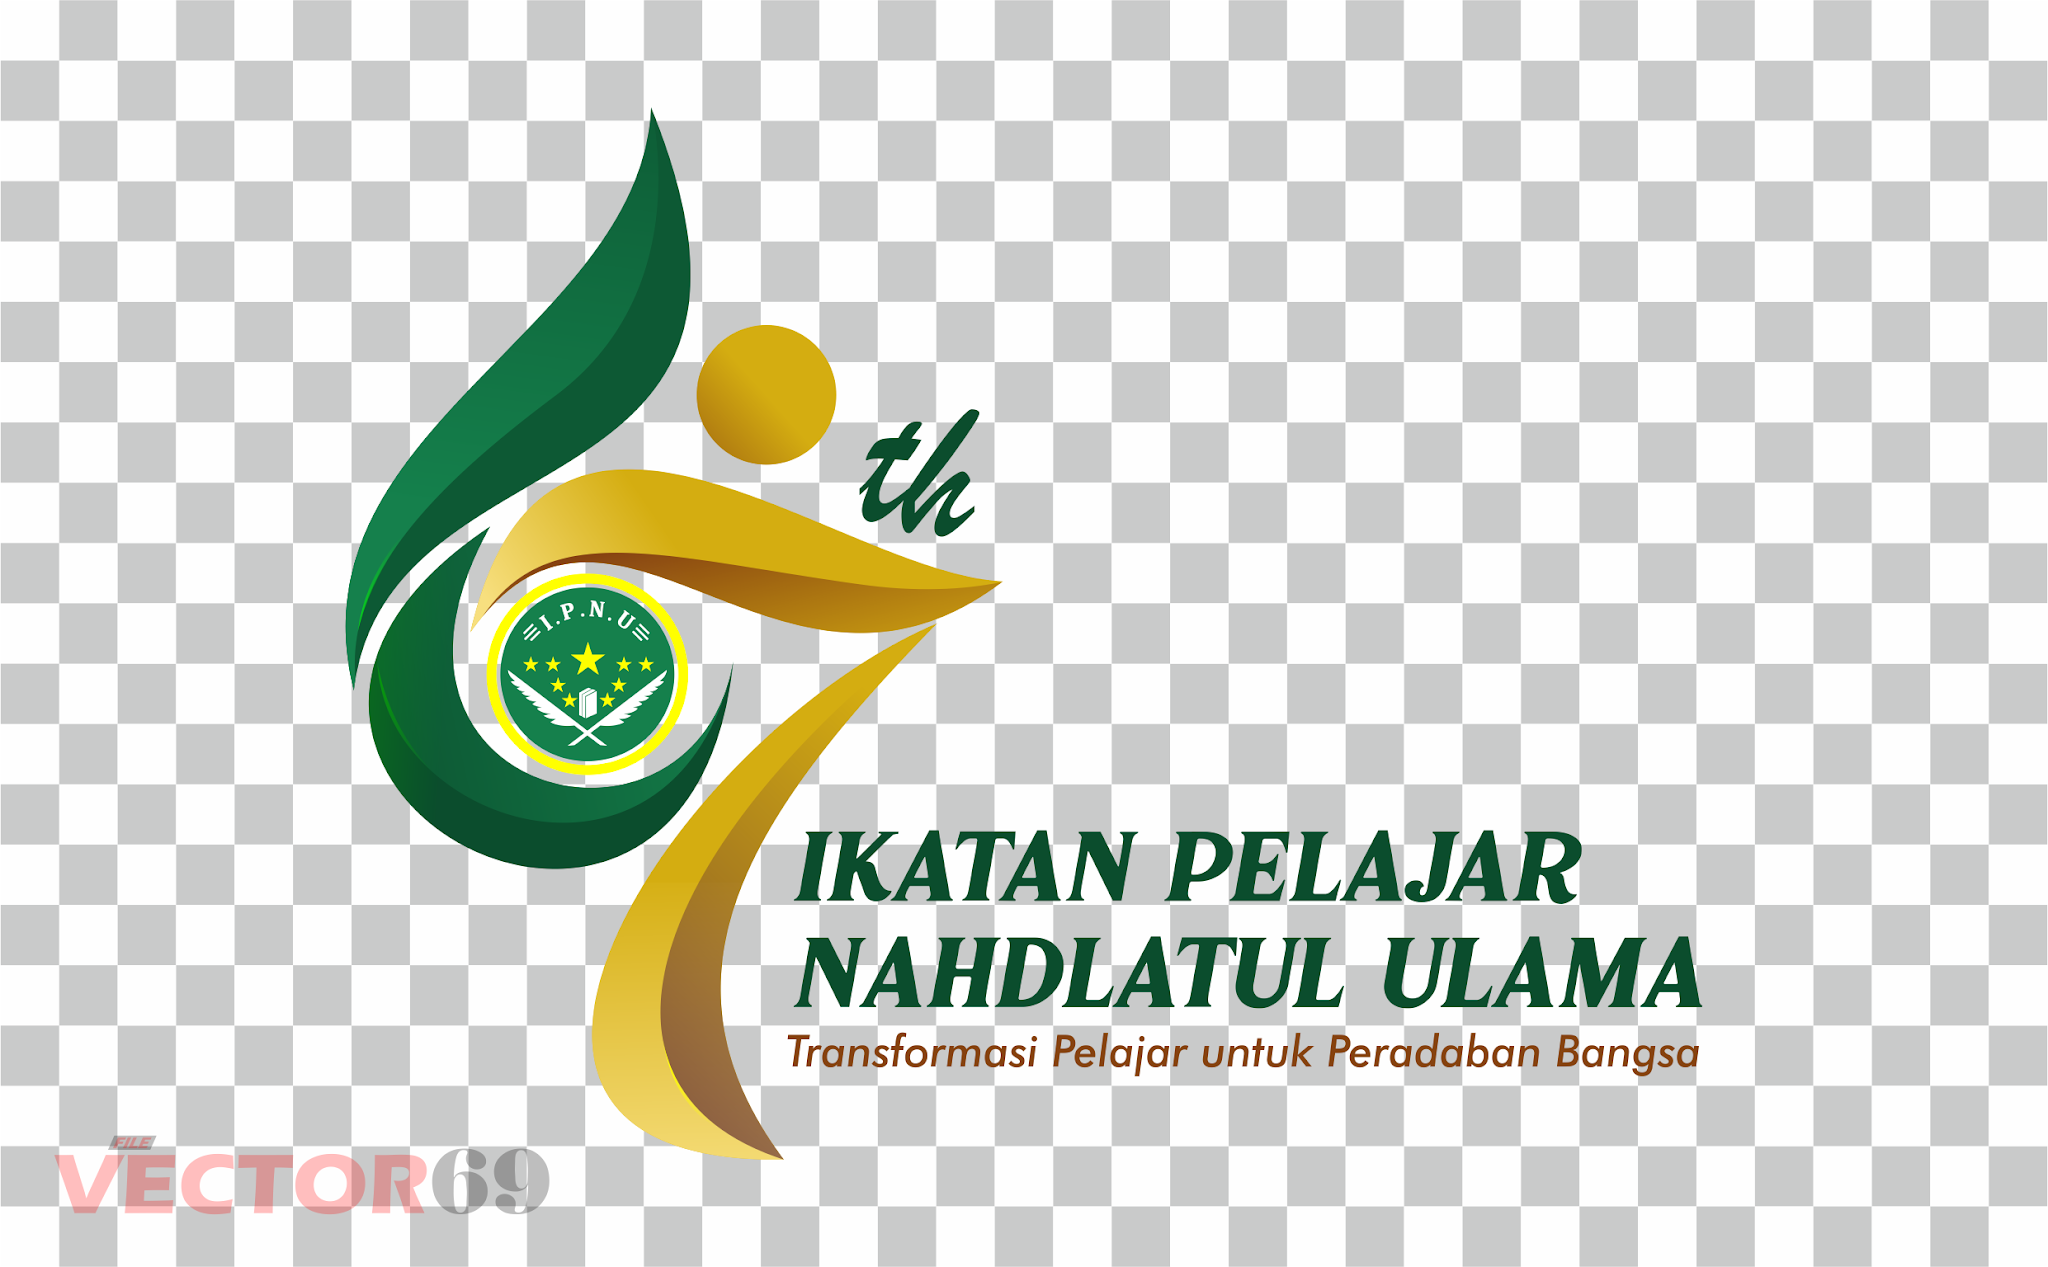 Harlah IPNU ke-67 Tahun 2021 Logo - Download Vector File PNG (Portable Network Graphics)